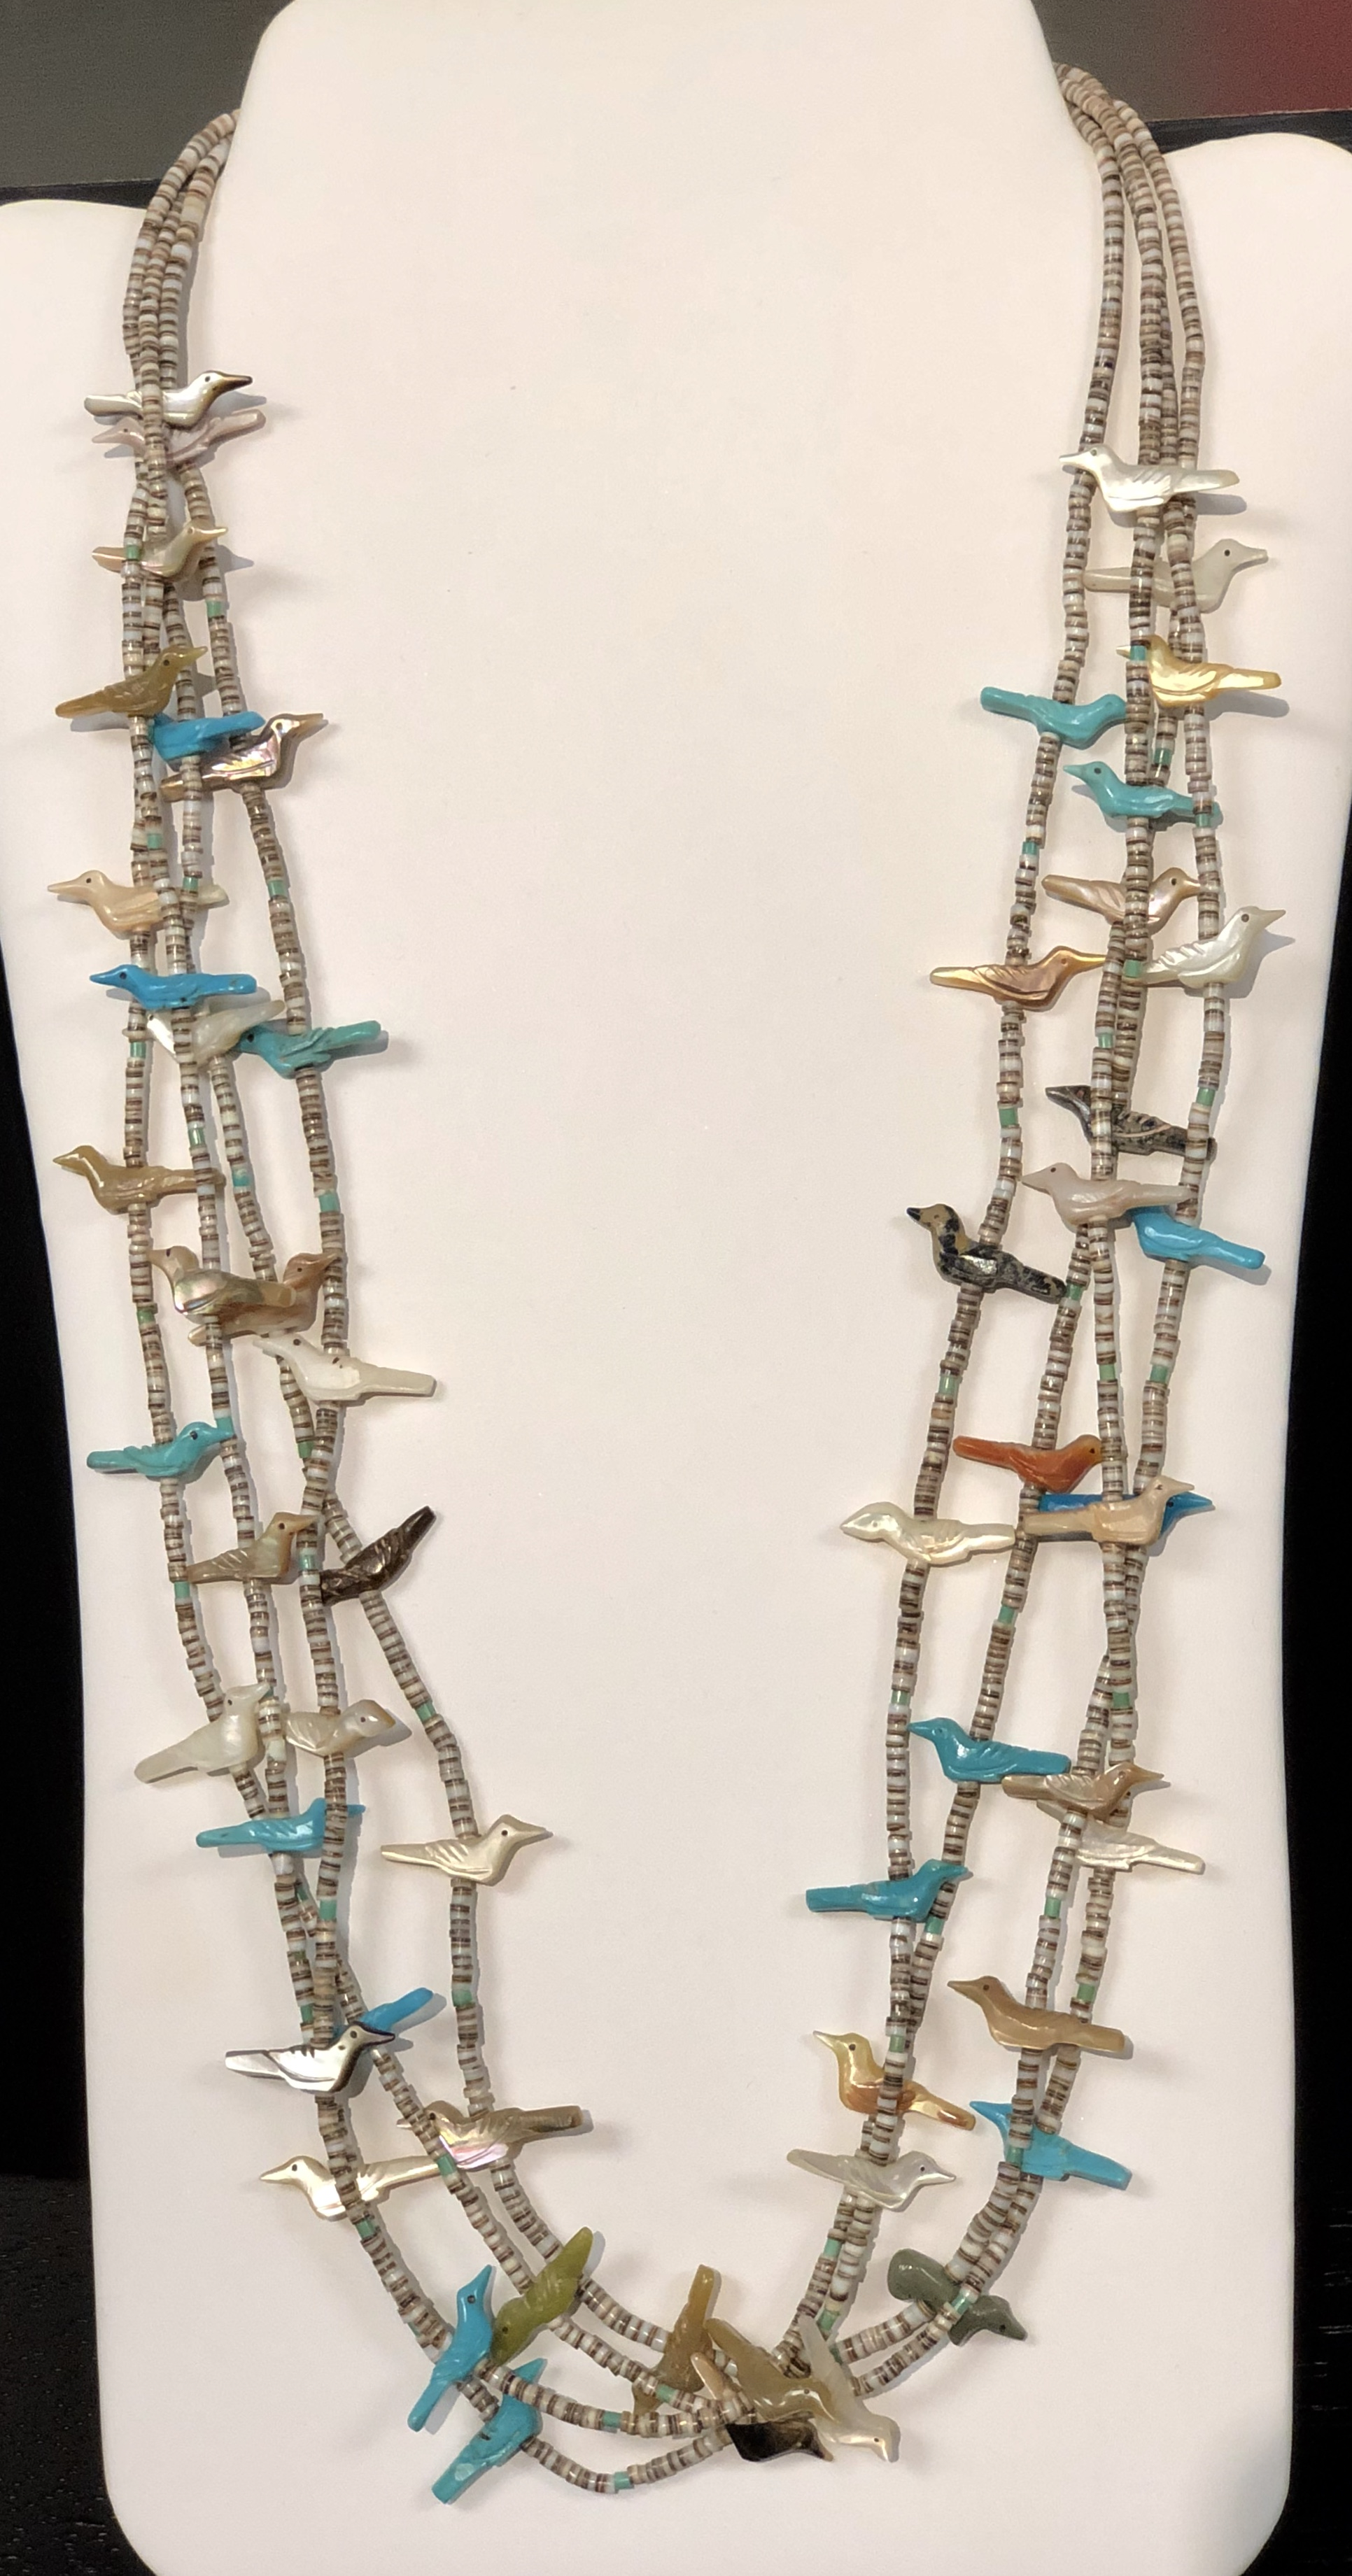 "Native American Fetish Necklace featuring four strands of high quality Turquoise and other assorted Stone Birds<br /> Pre-Owned, Excellent Condition<br /> 30"" long<br /> *Shipping includes Insurance*"